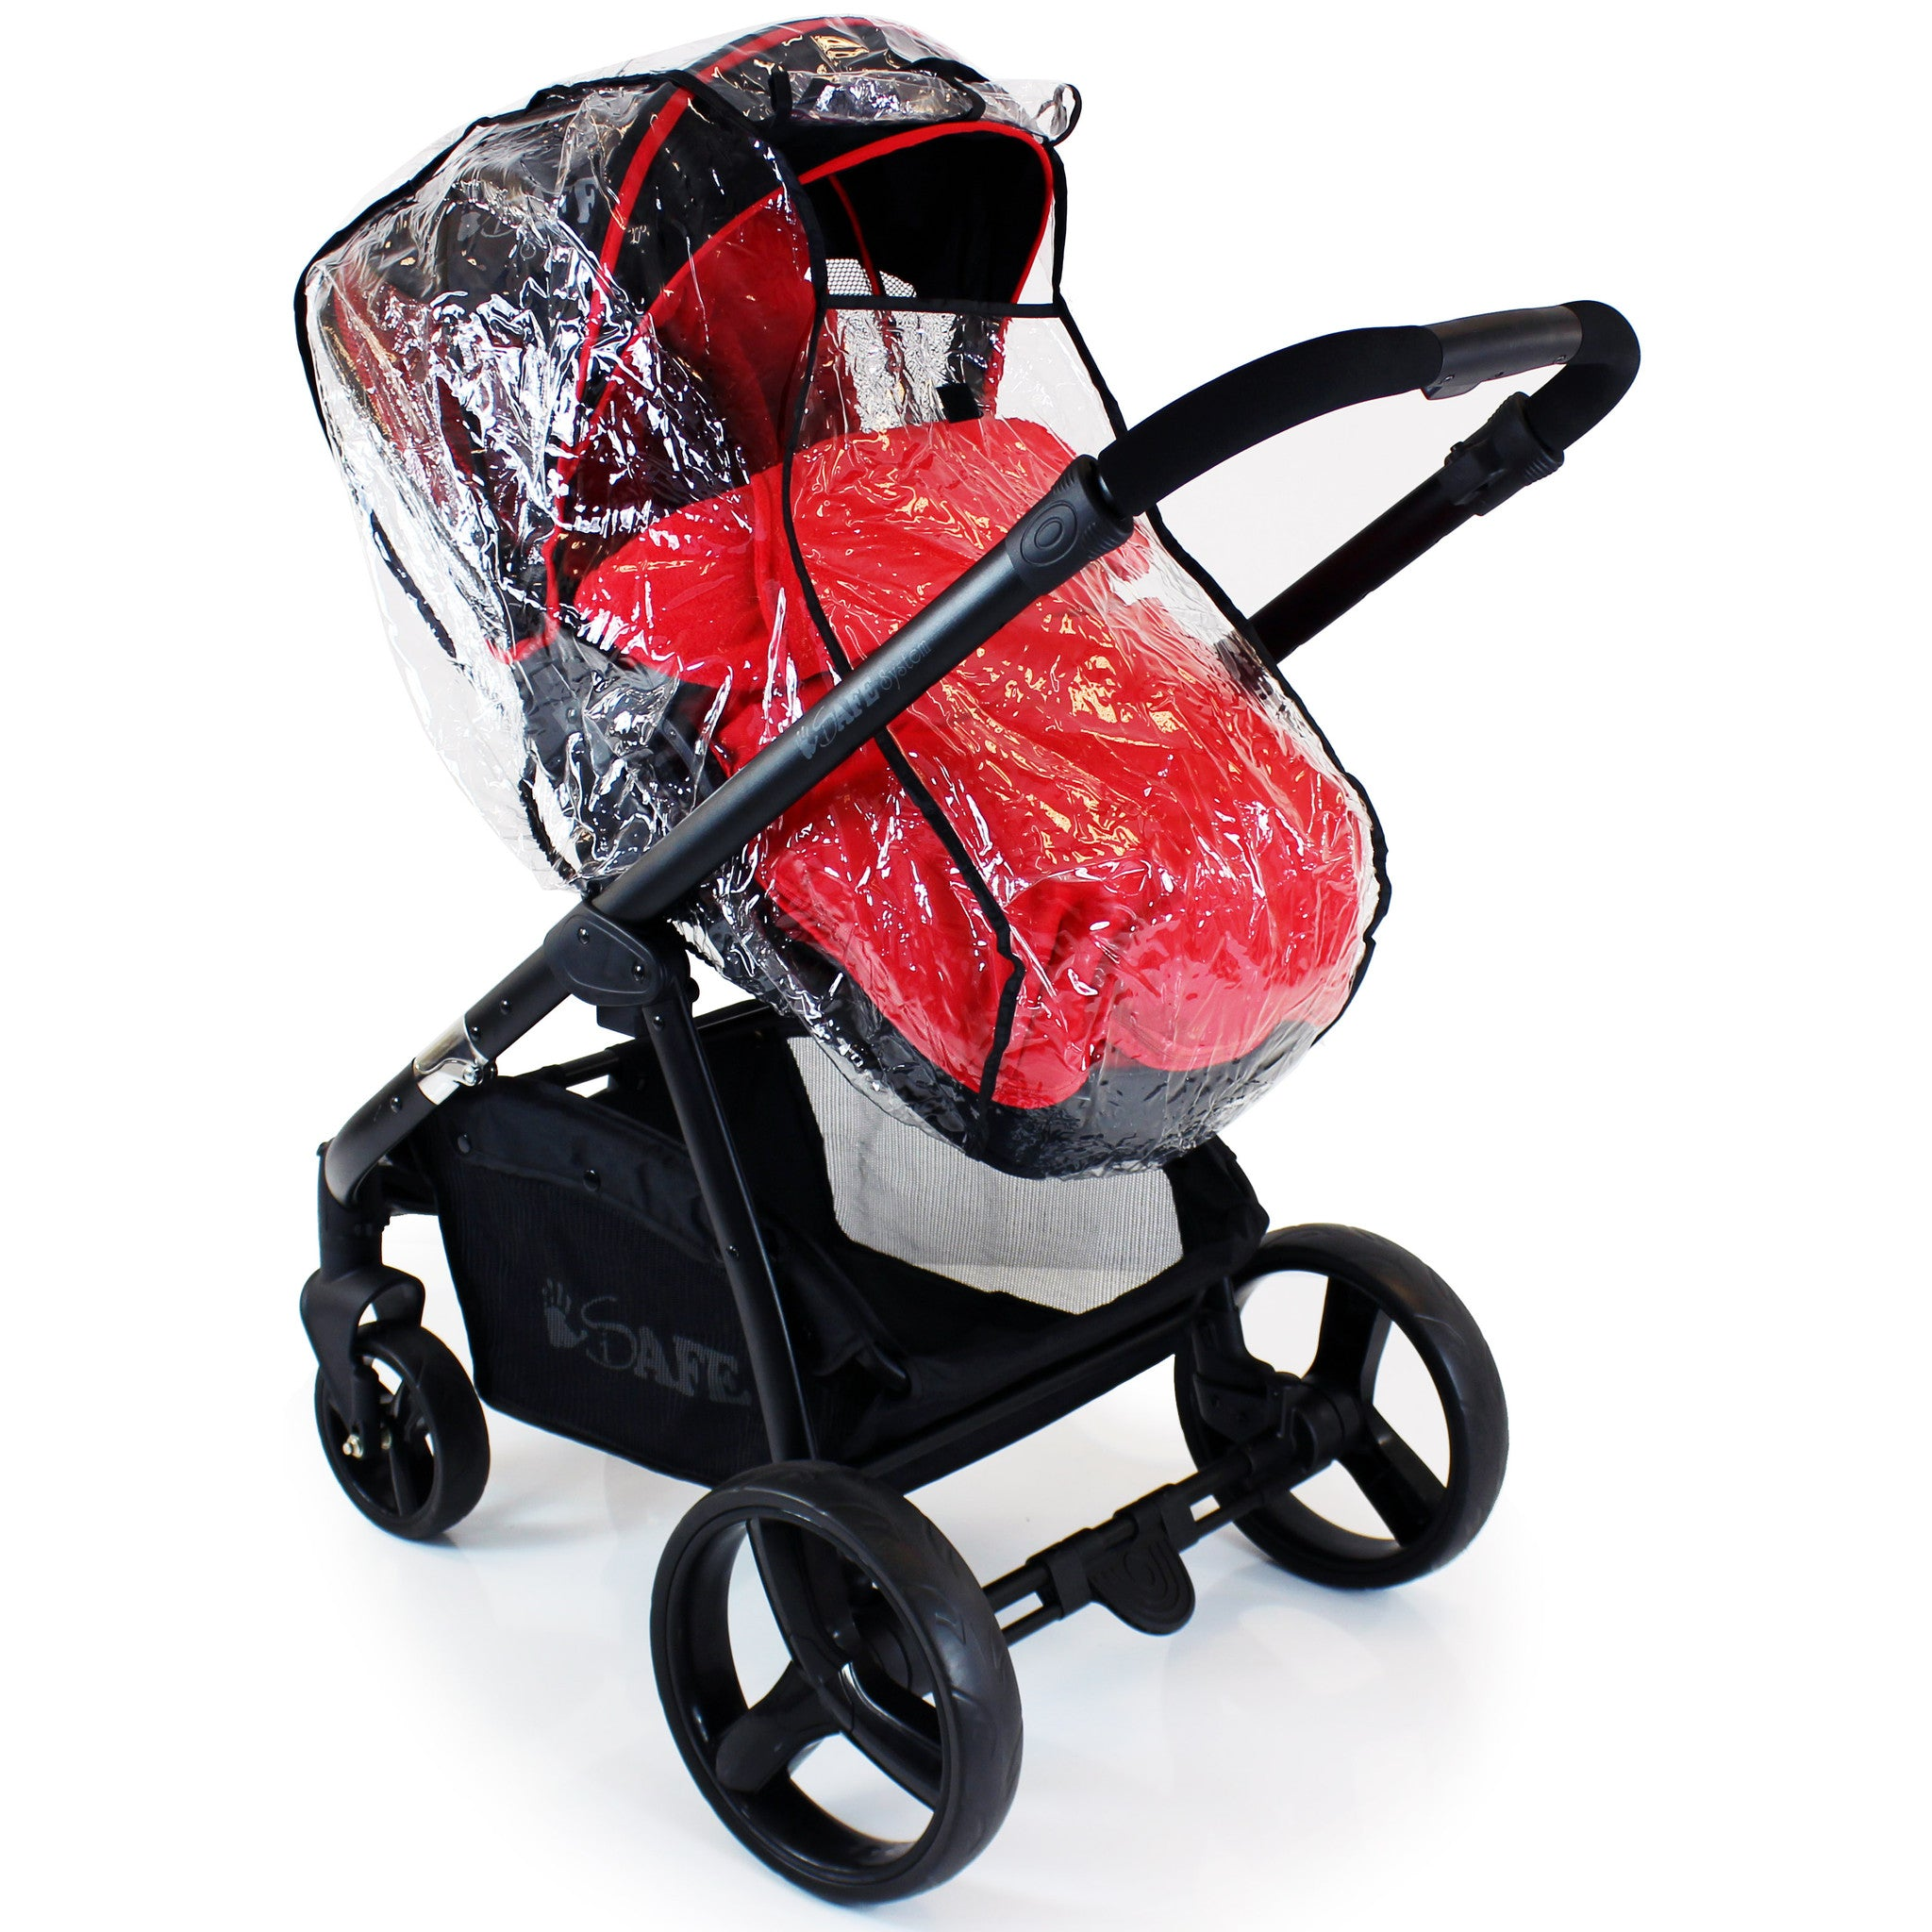 Rain Cover For Graco Evo Carrycot & Stroller All In 1 Wind Rain Coverall Baby